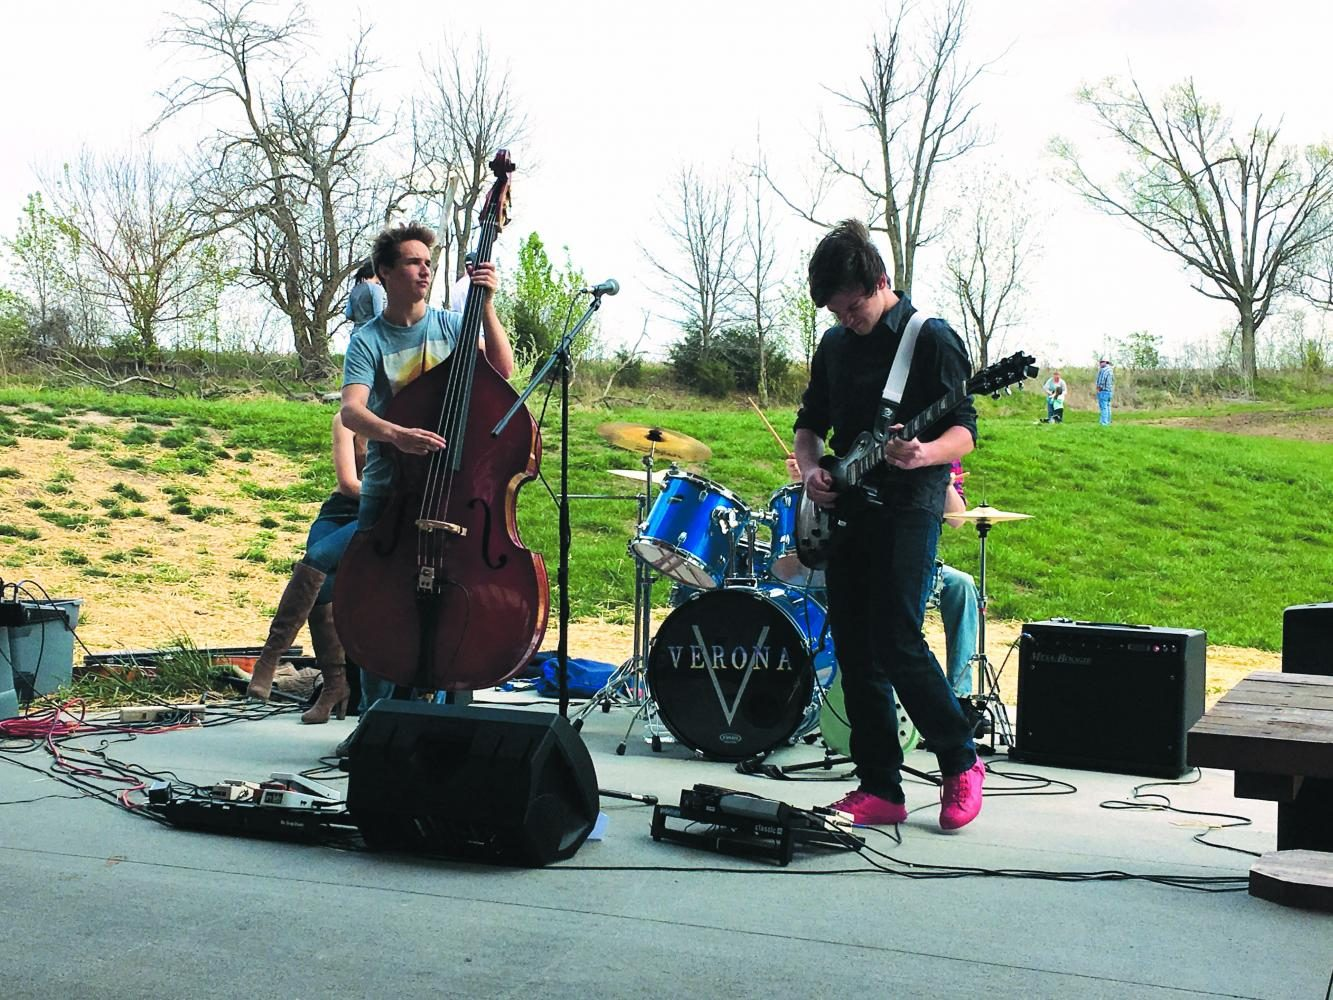 Verona+performs+at+the+Apple+Blossom+Festival+April+9.